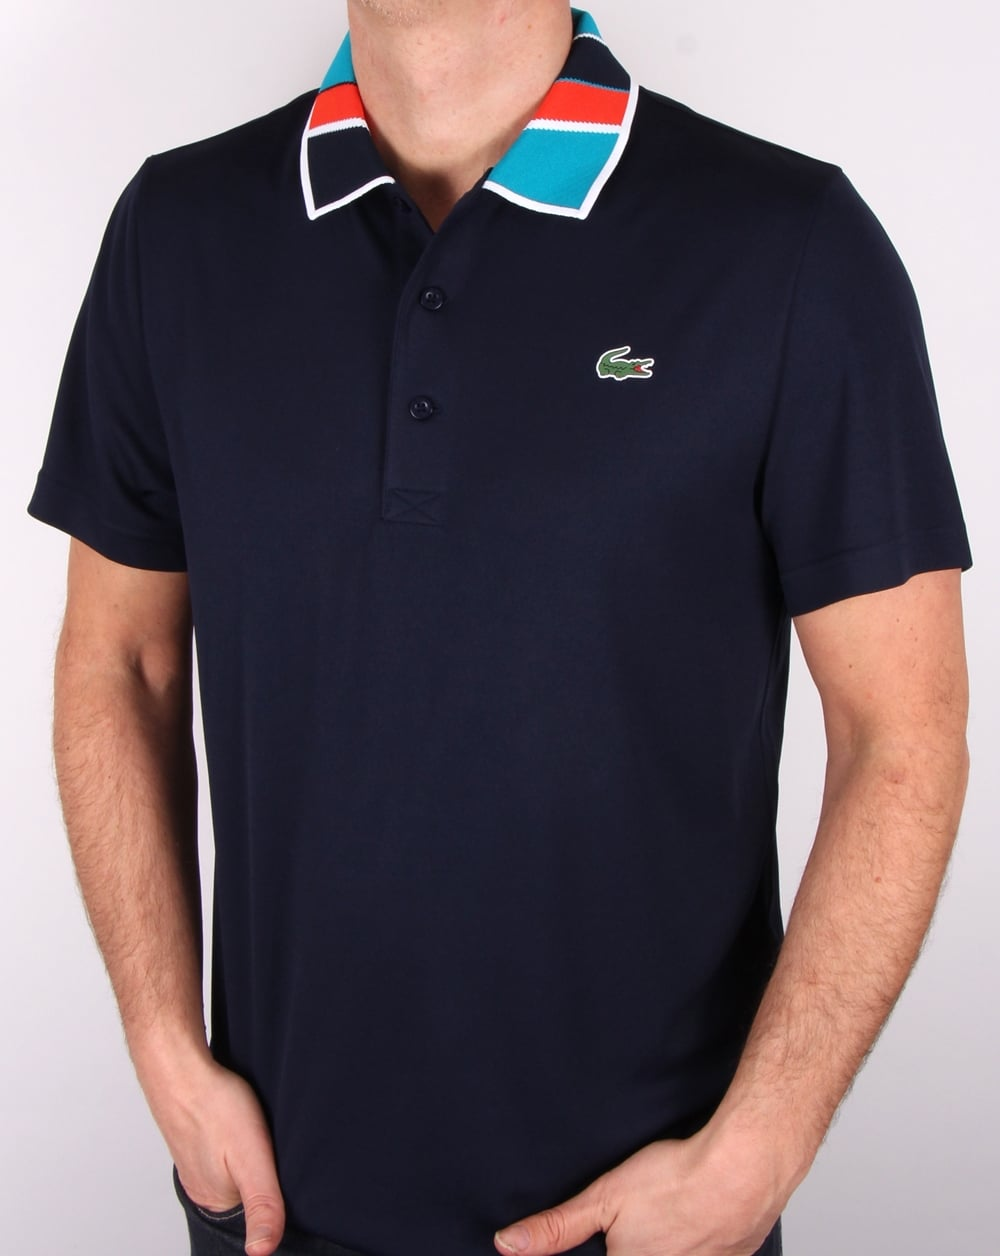 b90b6012 Lacoste Lacoste Patterned Collar Polo Shirt Navy/etna Red